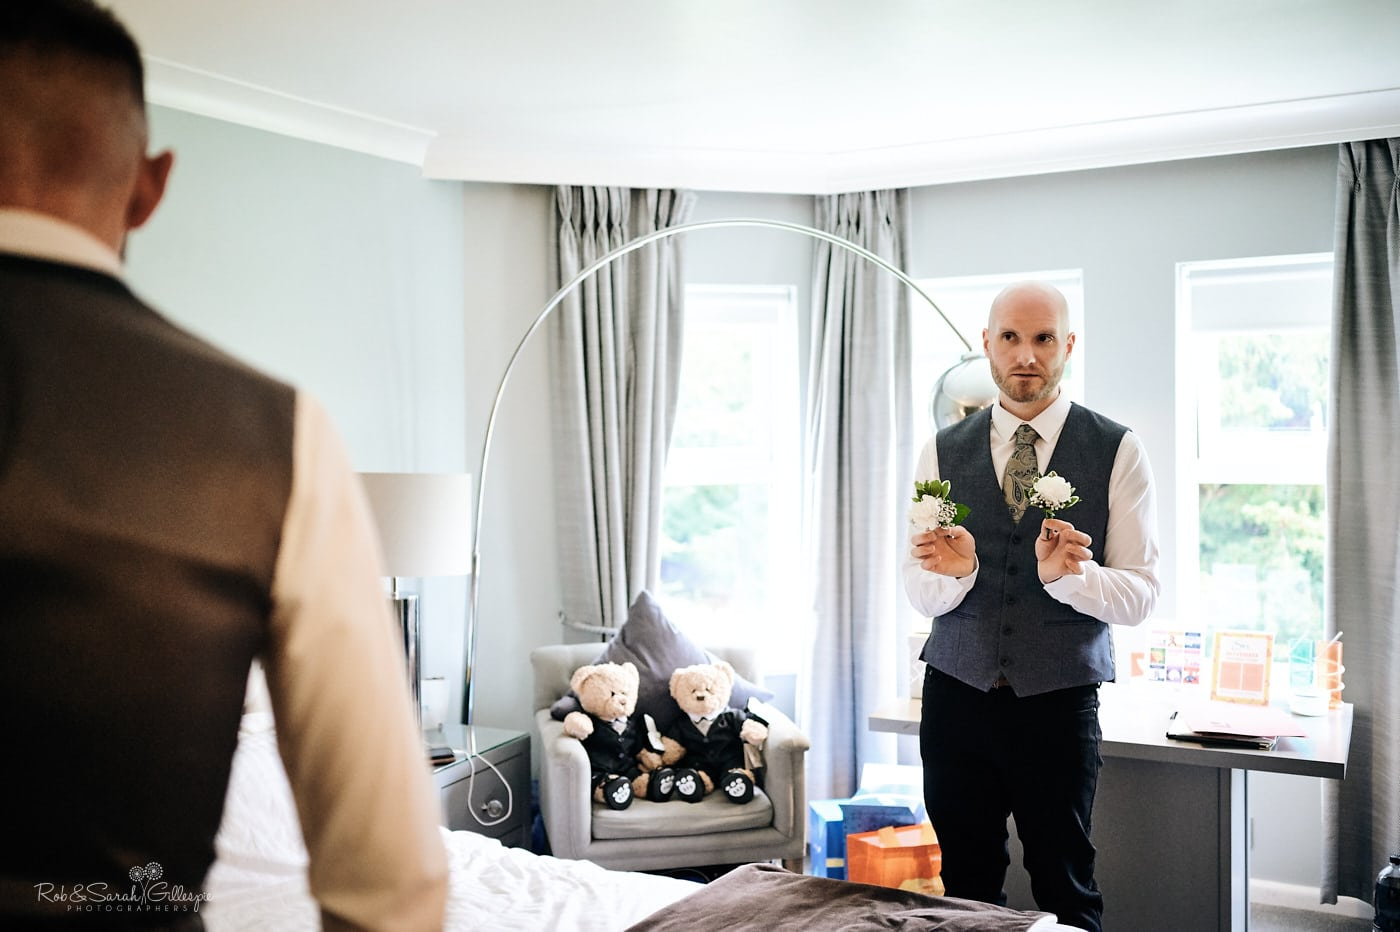 Two grooms prepare for wedding at Moor Hall Hotel